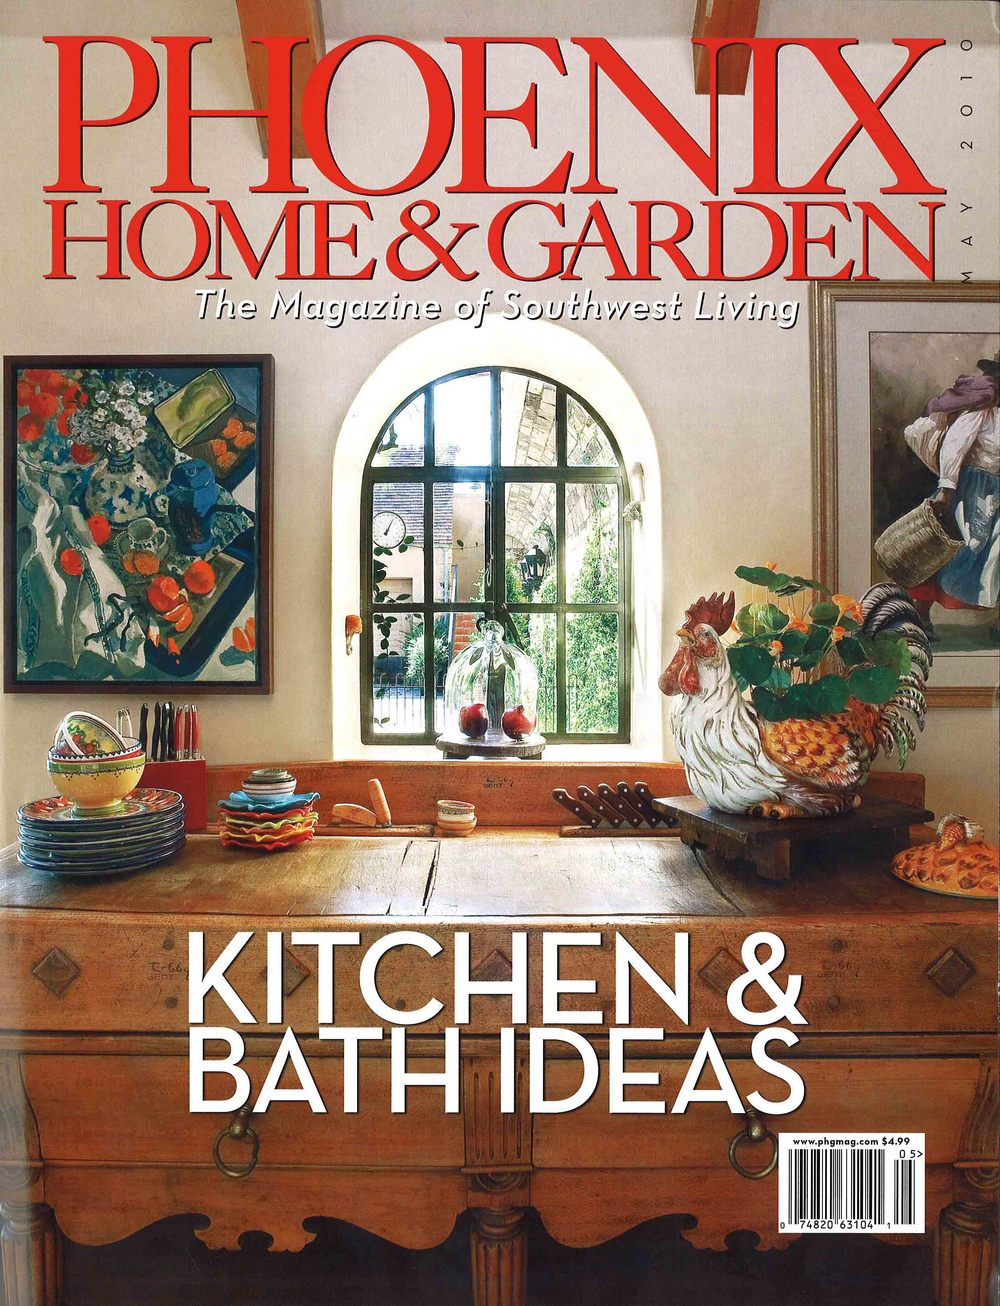 01 PHG may 2010cover 72.jpg